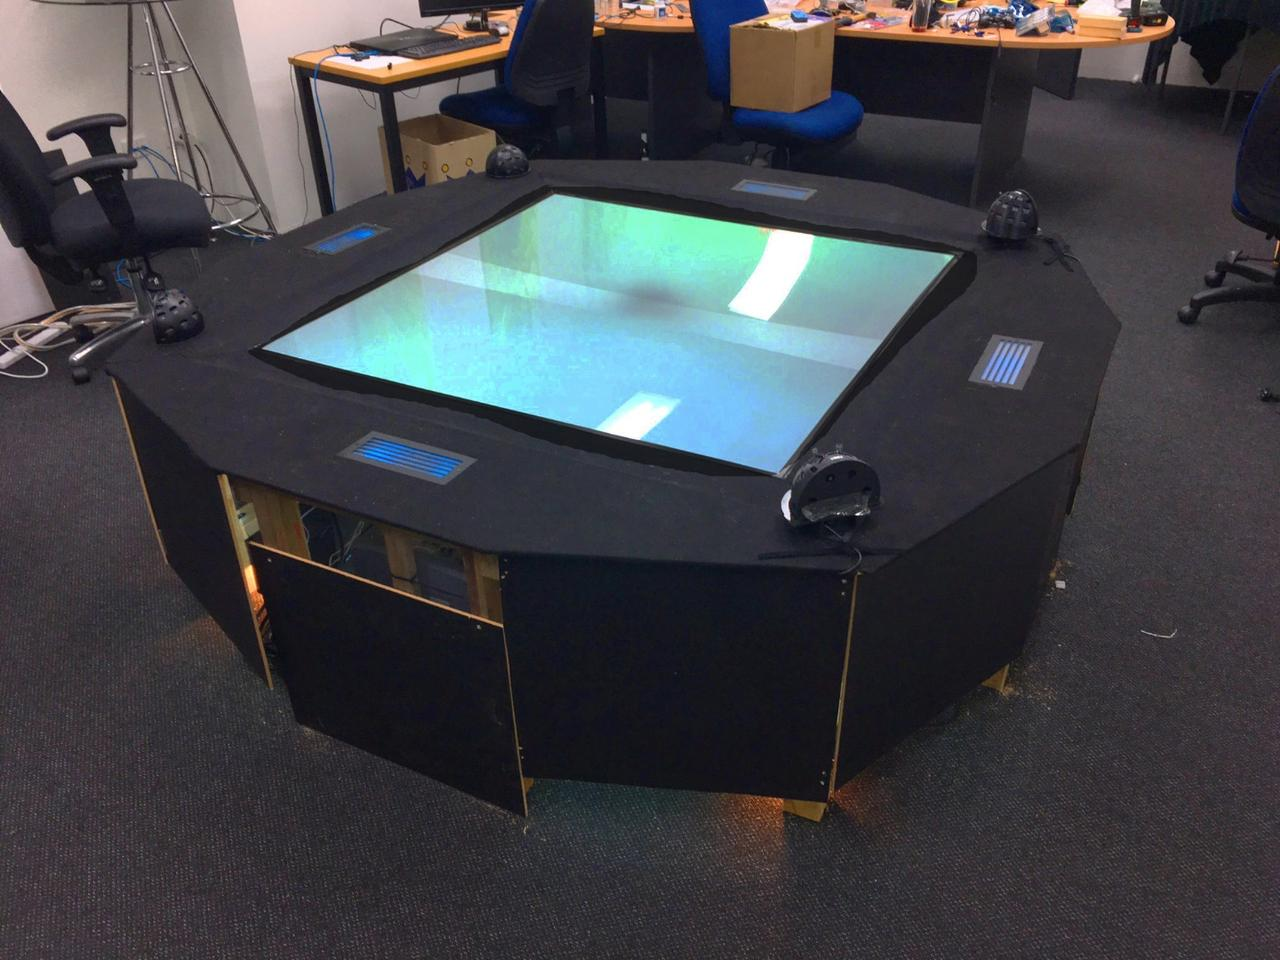 The Worlds First Multi User Hologram Table Is Here On Sale